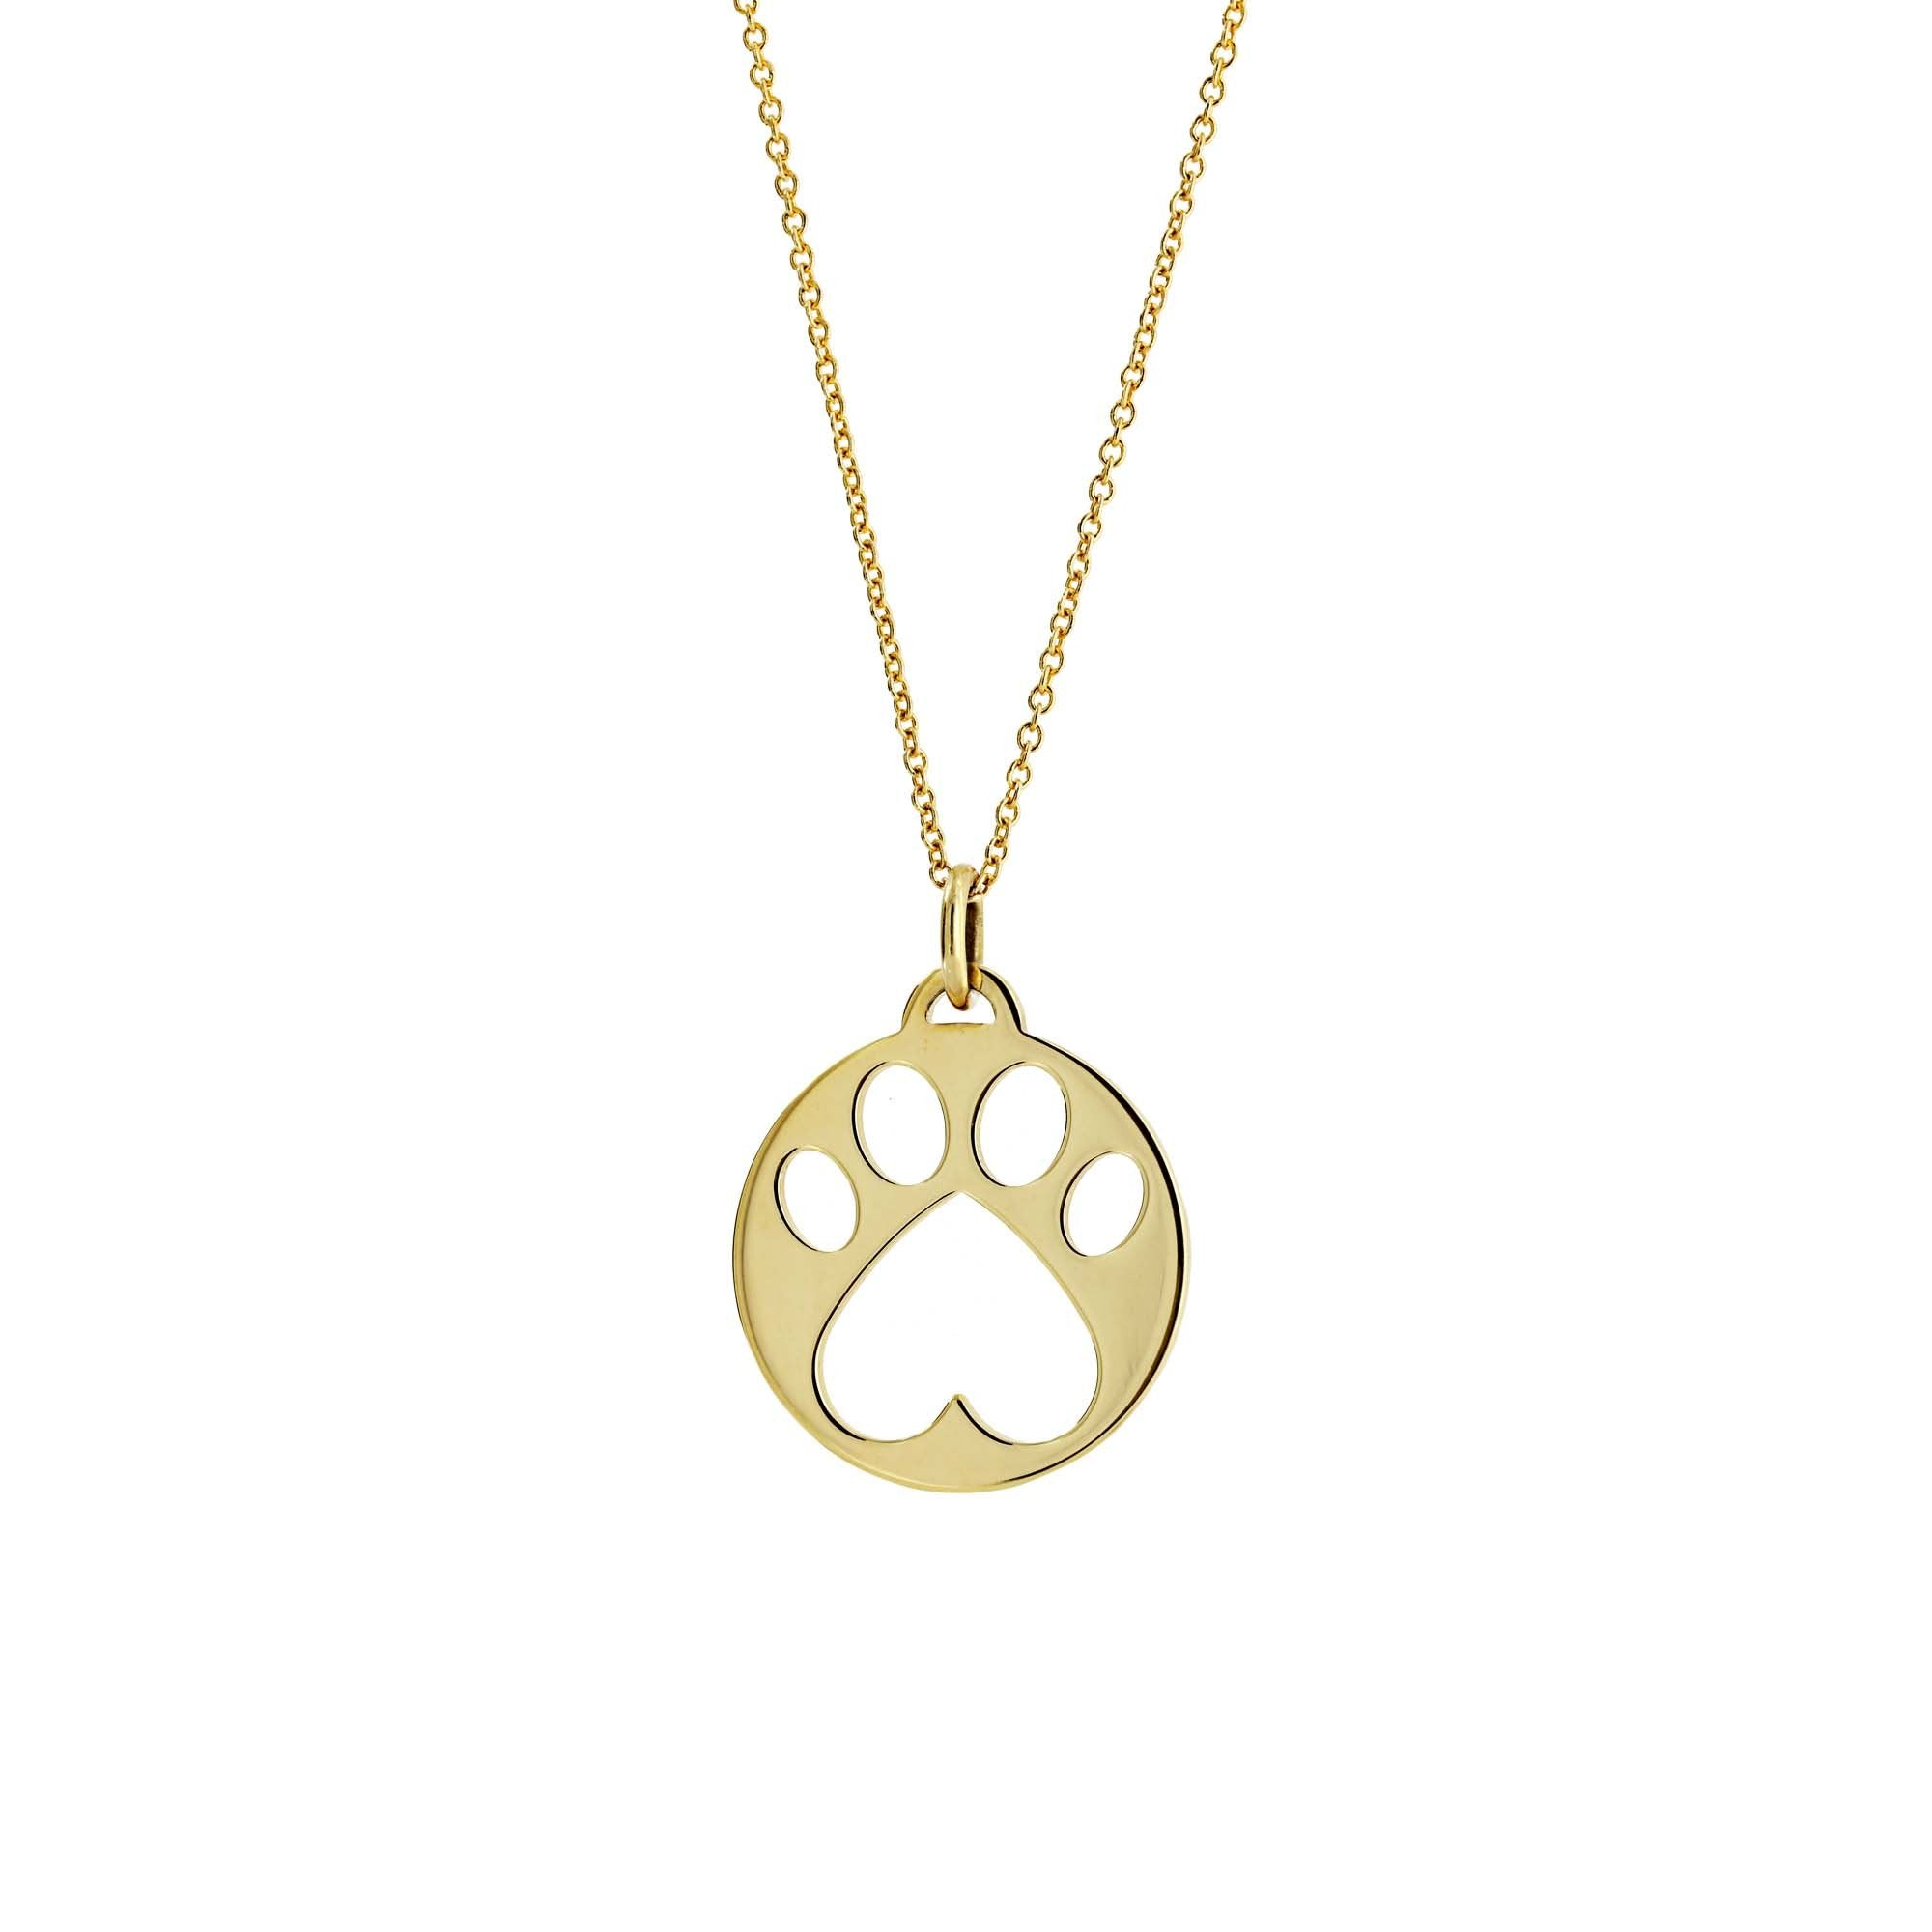 Our Cause for Paws Yellow Gold Paw Charm Pendant